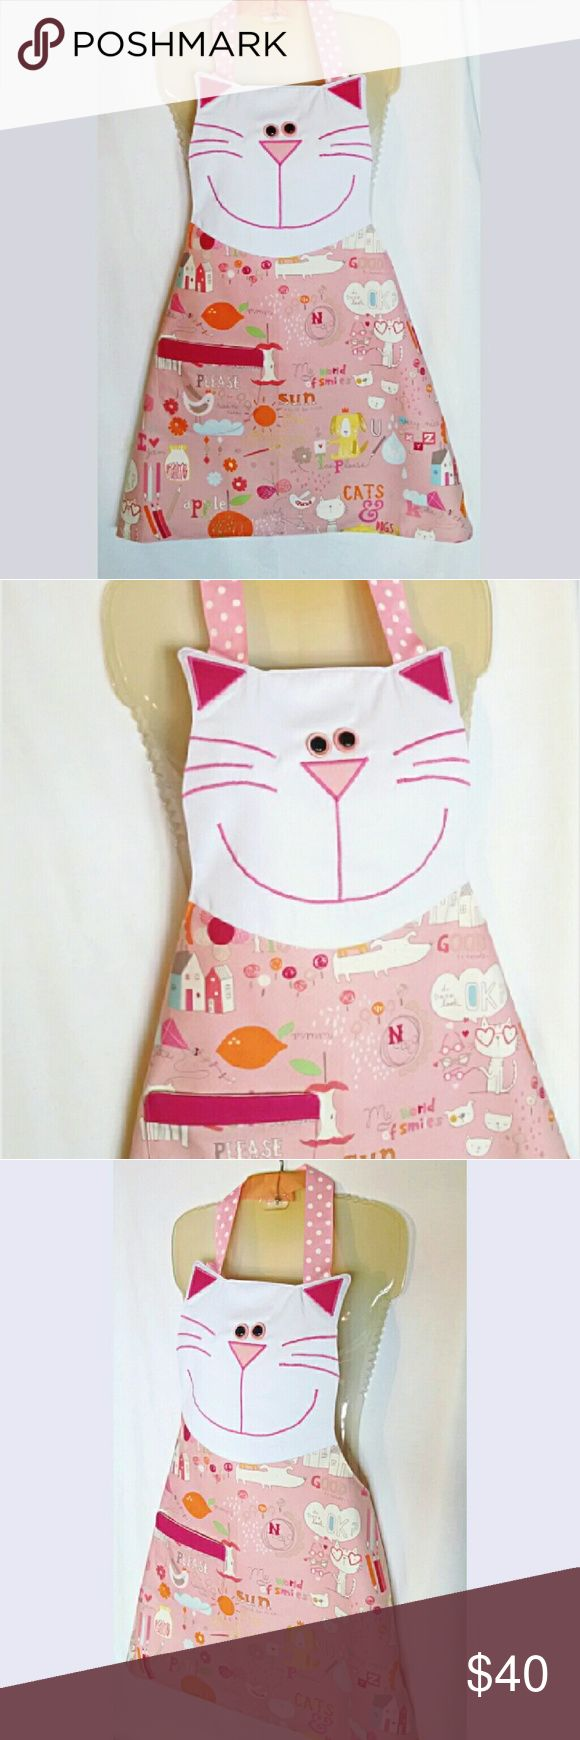 """Adorable Kitty 😻 CAT LOVER Apron BRAND NEW - HANDMADE APRON Are you a cat lover who loves to cook or bake? Do you know someone who wants to show their feline fever & dress cute while pet grooming, cutting people hair or waitressing. This is the Purrrrrfect apron for cat lovers! Get it for yourself or as a gift. """"Meowy Christmas!"""" Made of thick durable 100 % Duck Cotton Fully Lined with Pocket Spray with Scotchgard for easier clean up and resistant to stains! One Size Fits Most Length: 28""""…"""